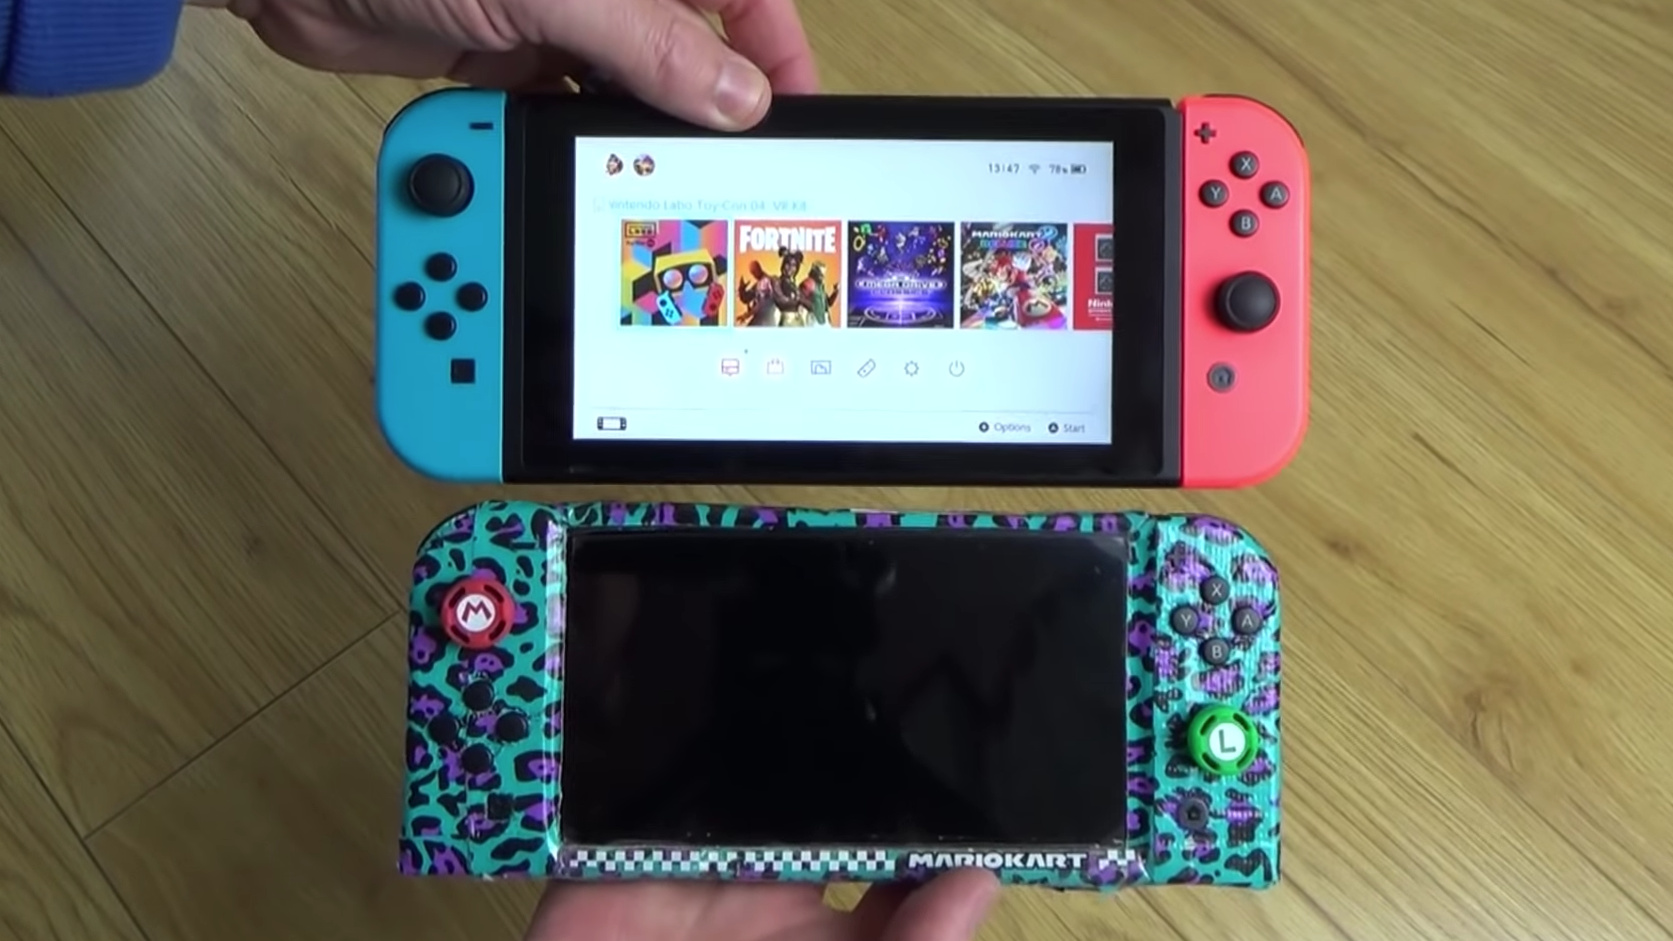 Fan Creates Homemade Switch Mini Console, Beating Nintendo To The Punch